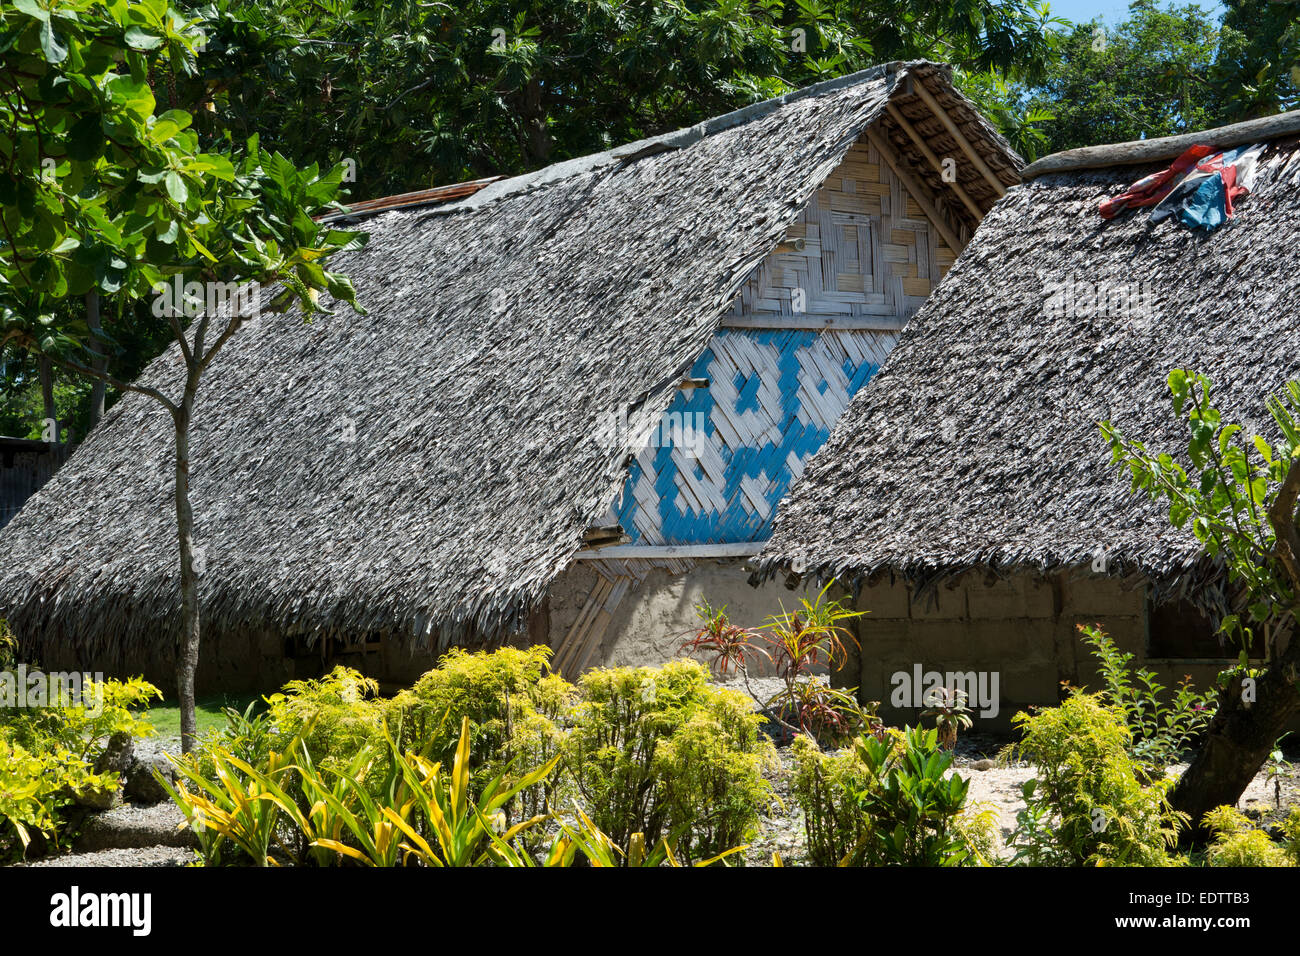 Melanesia, Vanuatu, Rano Island. Typical thatched village home. - Stock Image